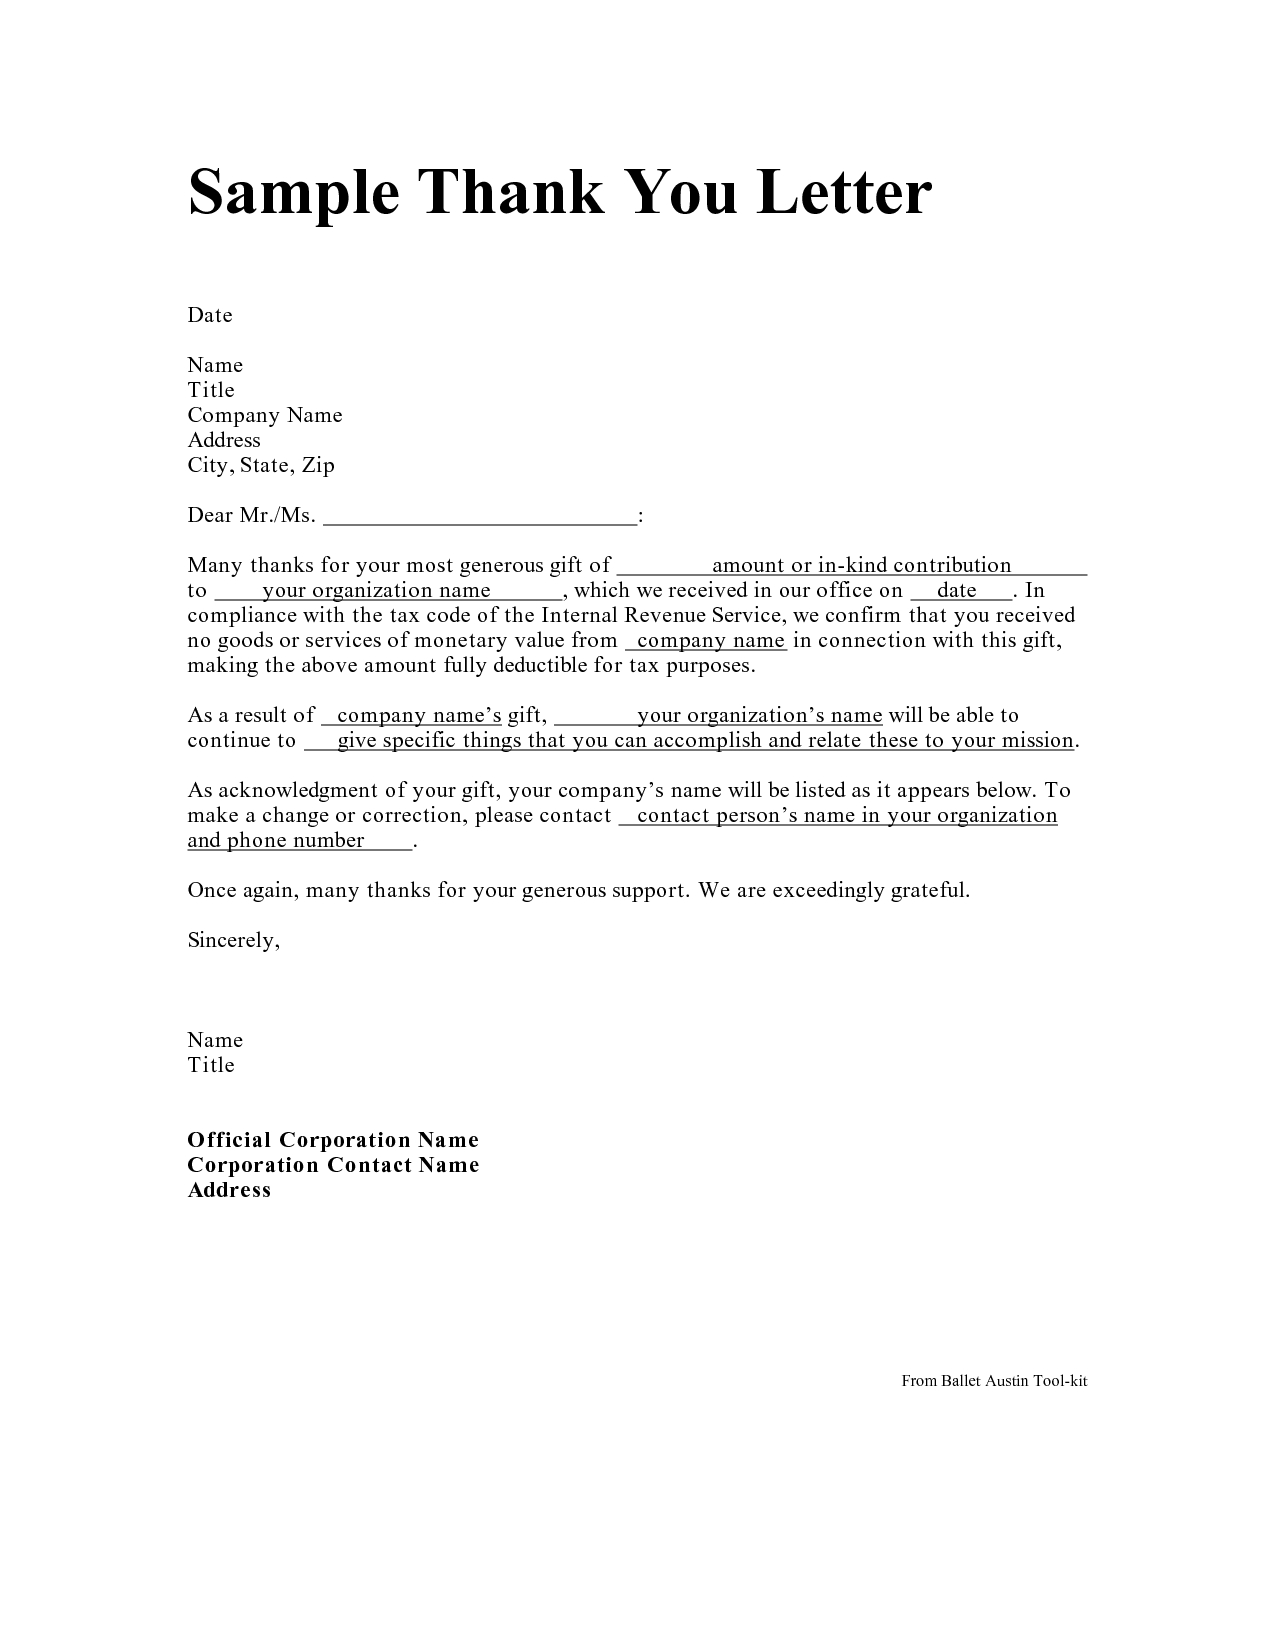 Welcome Bag Letter Template - Personal Thank You Letter Personal Thank You Letter Samples